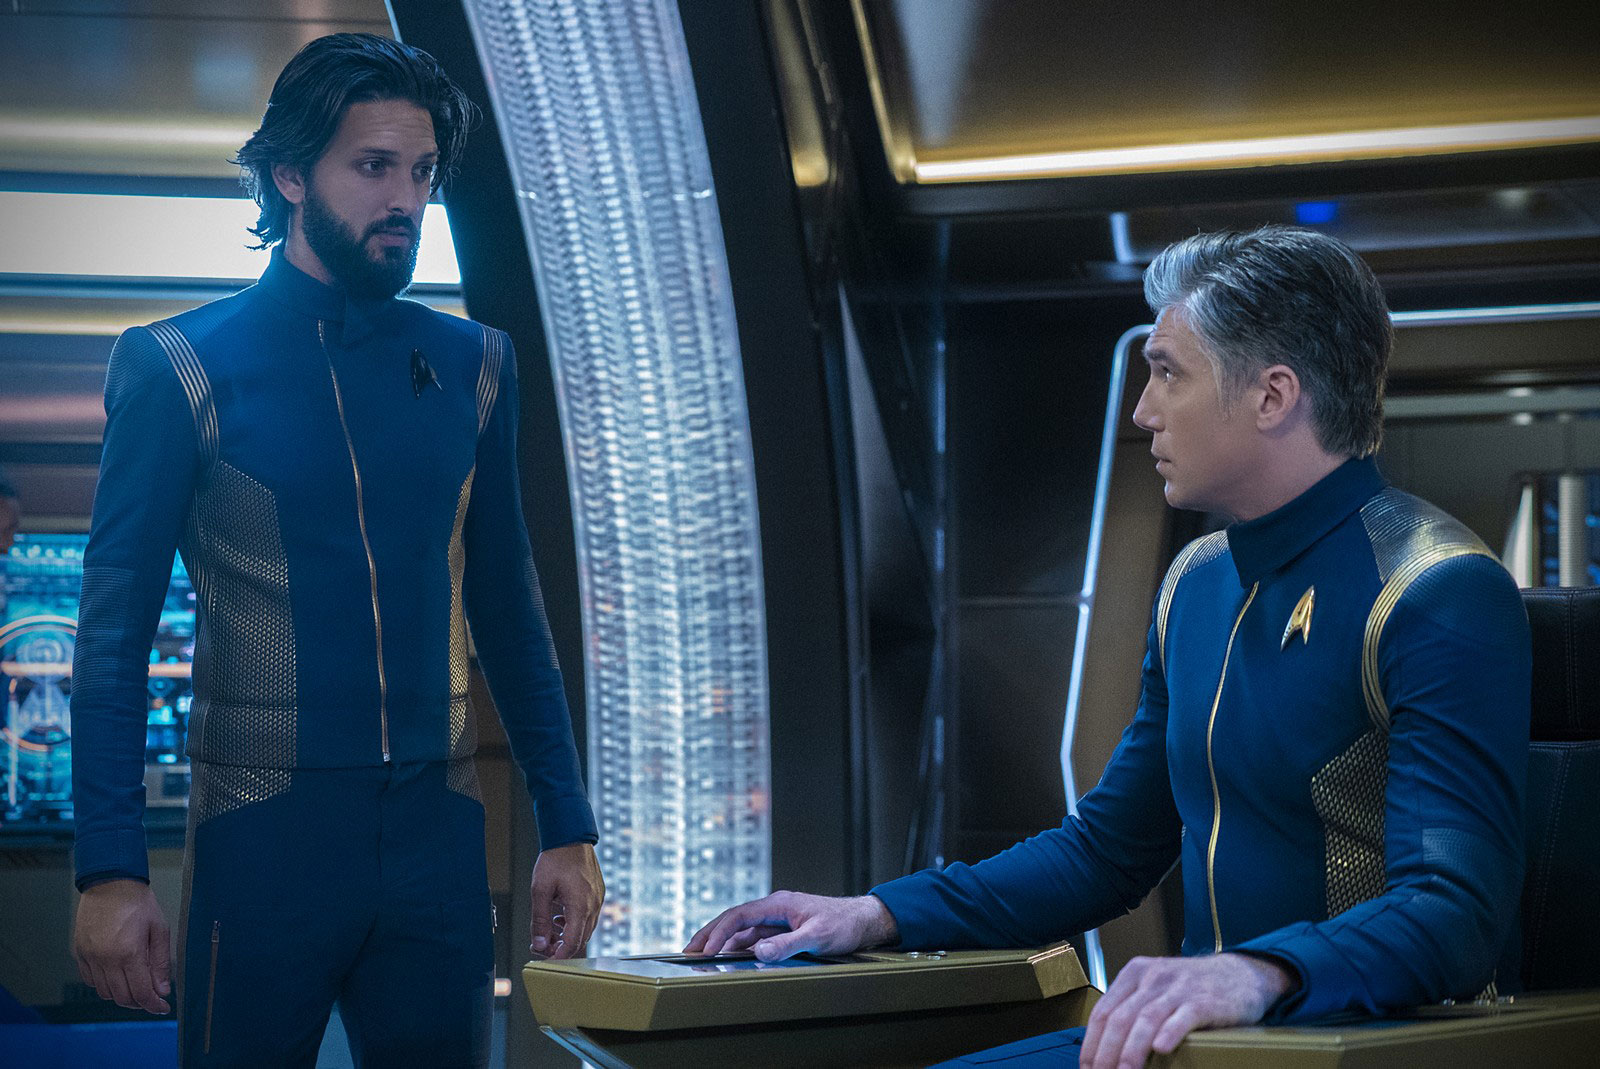 Shazad Latif as Ash Tyler and Anson Mount as Christopher Pike